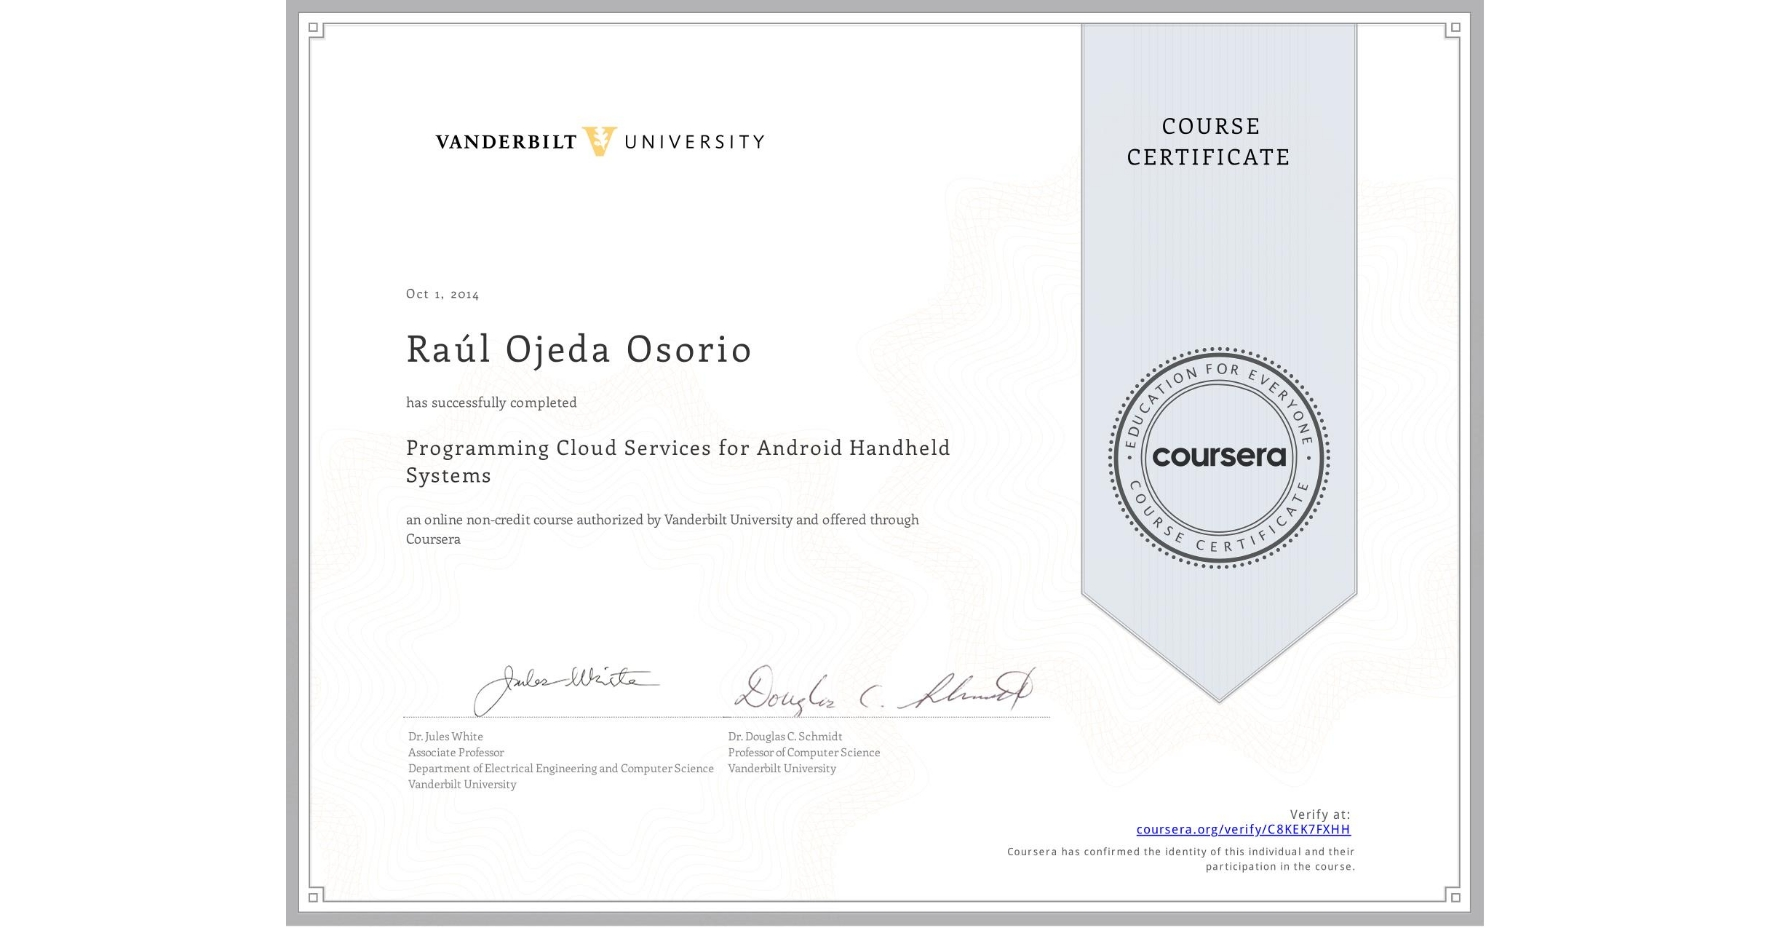 View certificate for Raúl Ojeda Osorio, Programming Cloud Services for Android Handheld Systems, an online non-credit course authorized by Vanderbilt University and offered through Coursera